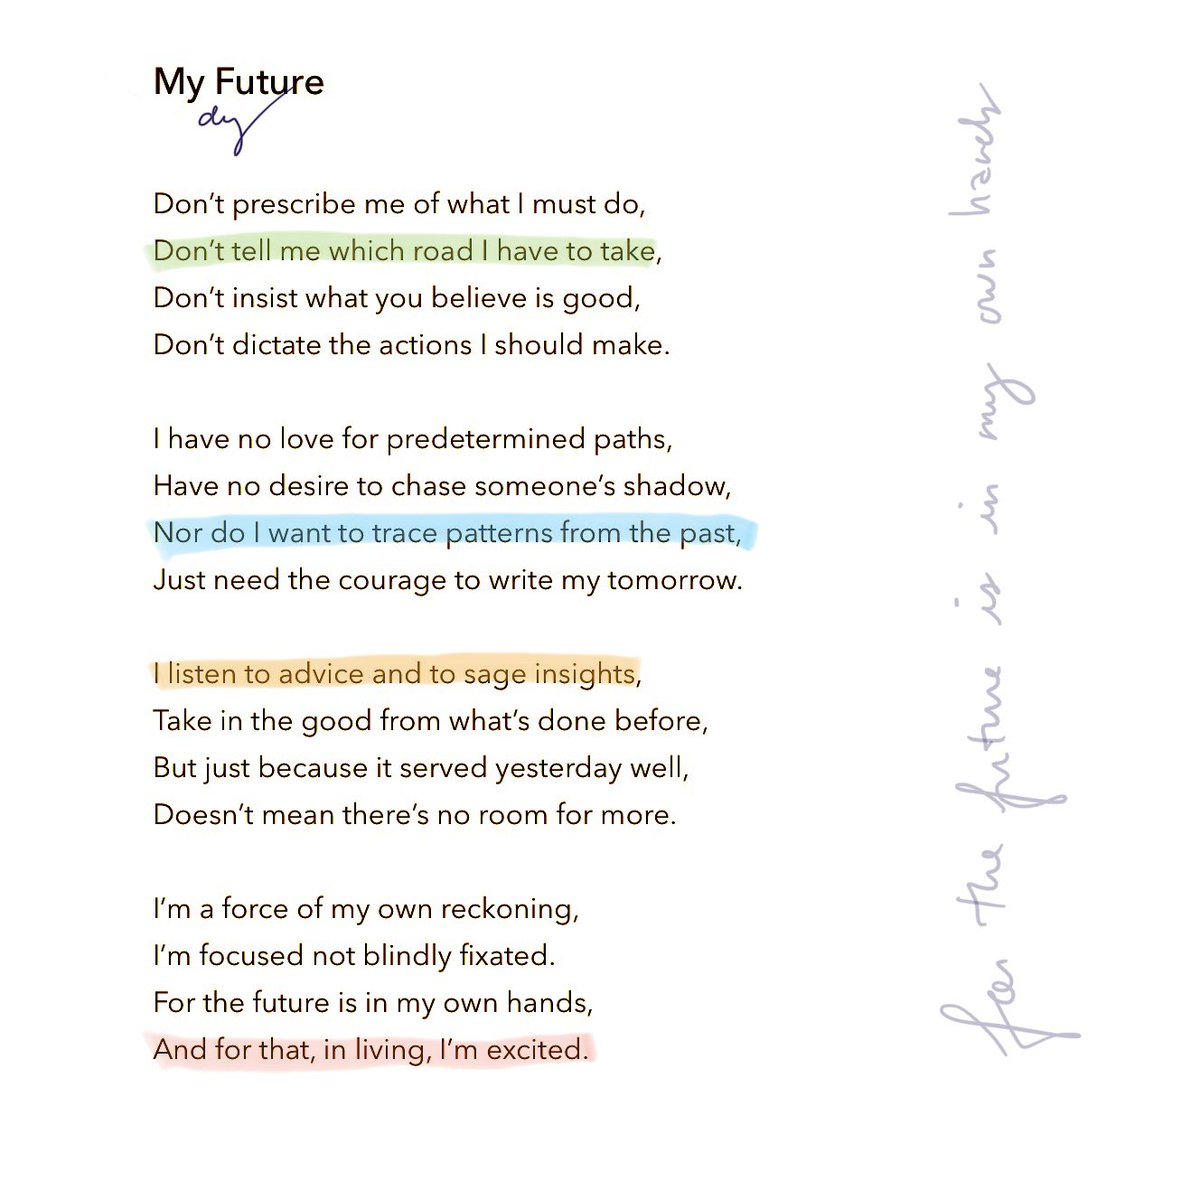 """""""Just need the courage to write my tomorrow."""" #MyFuture #Poetry https://t.co/21zv6FAN7j"""